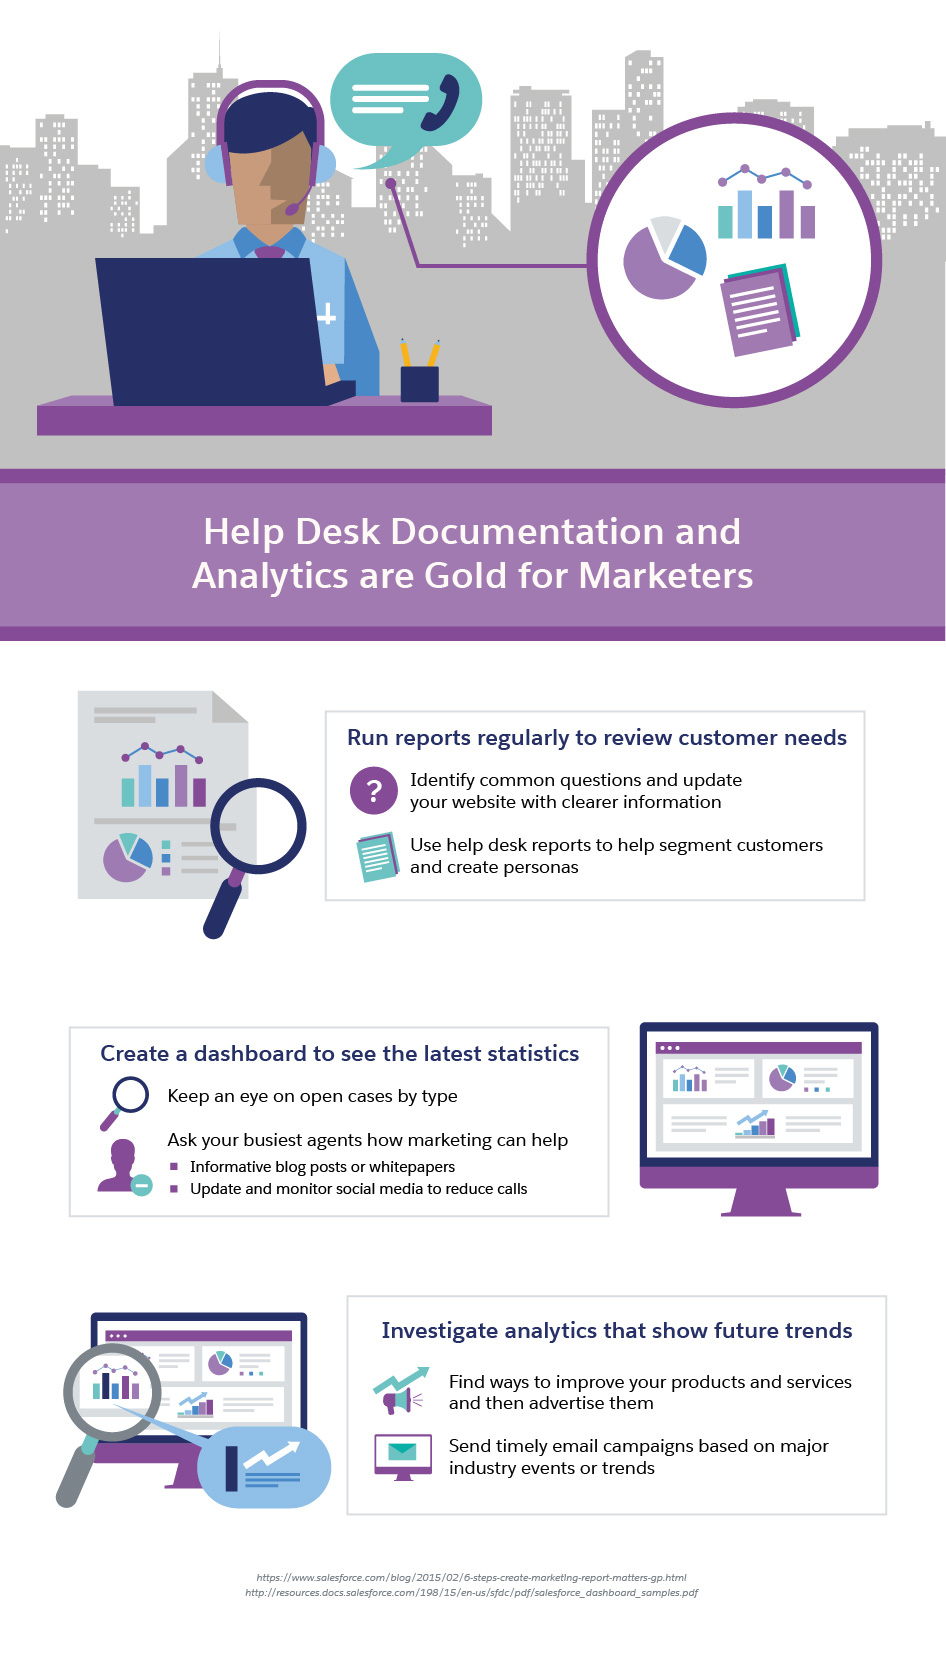 9 help desk best practices that improve marketing roi sforce com encourage your help desk and marketing to work together